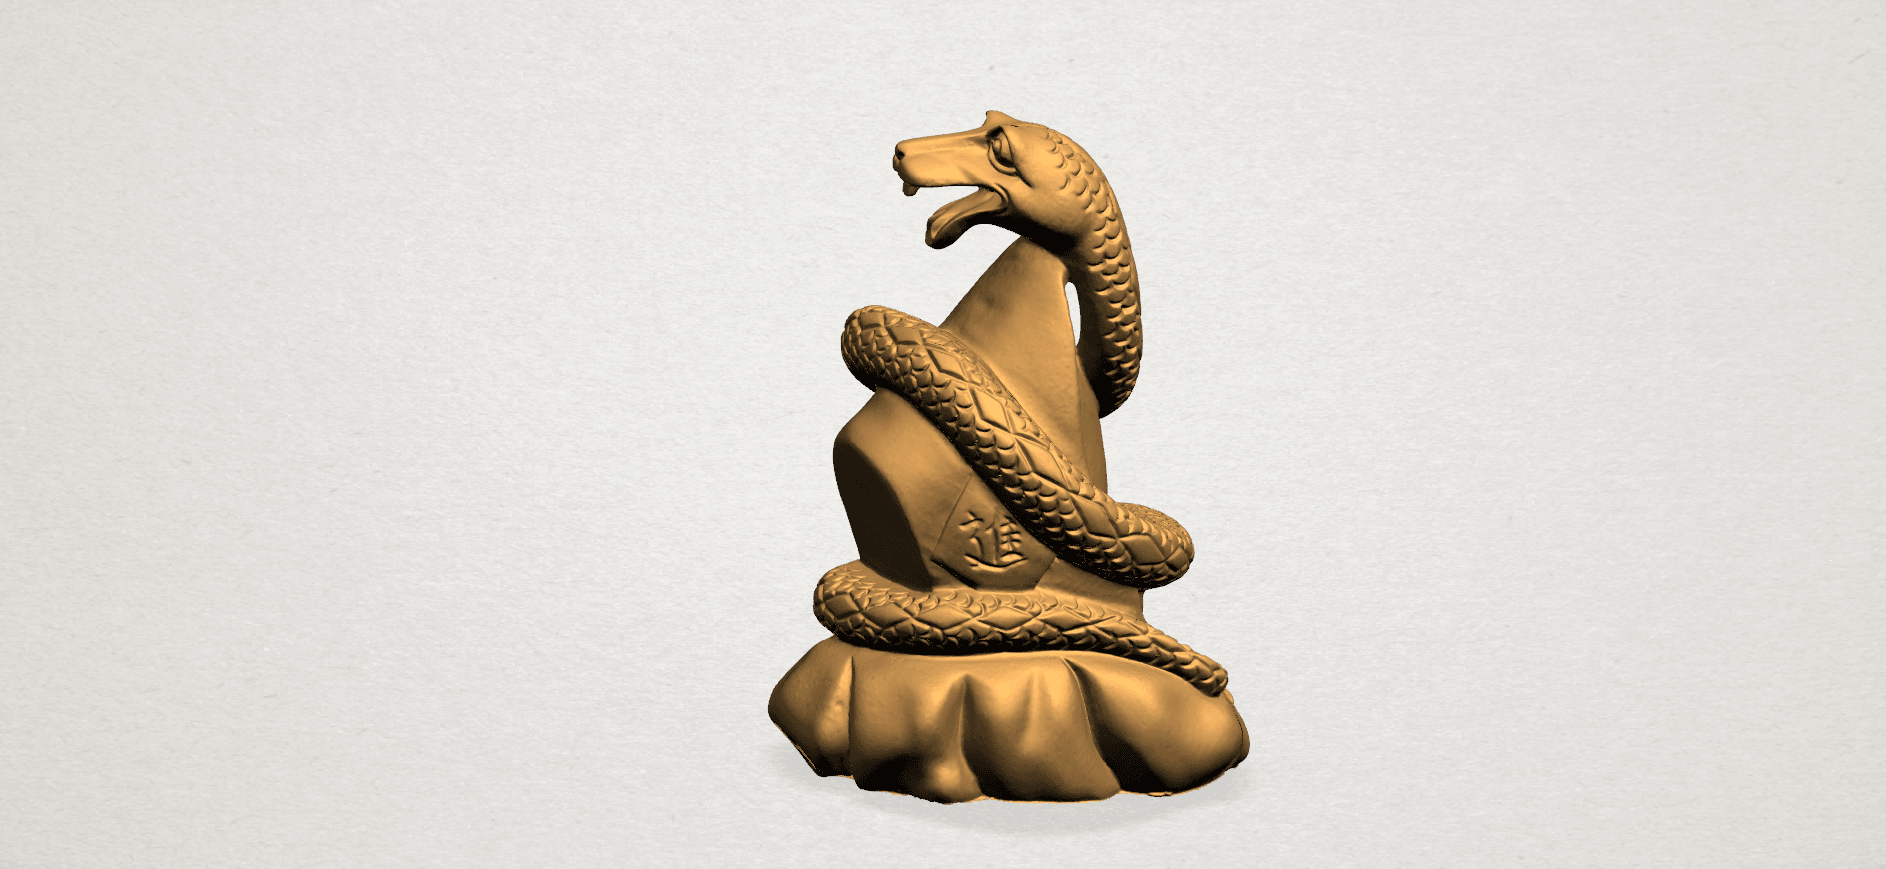 Chinese Horoscope06-A03.png Télécharger fichier STL gratuit Horoscope Chinois 06 Serpent • Design imprimable en 3D, GeorgesNikkei